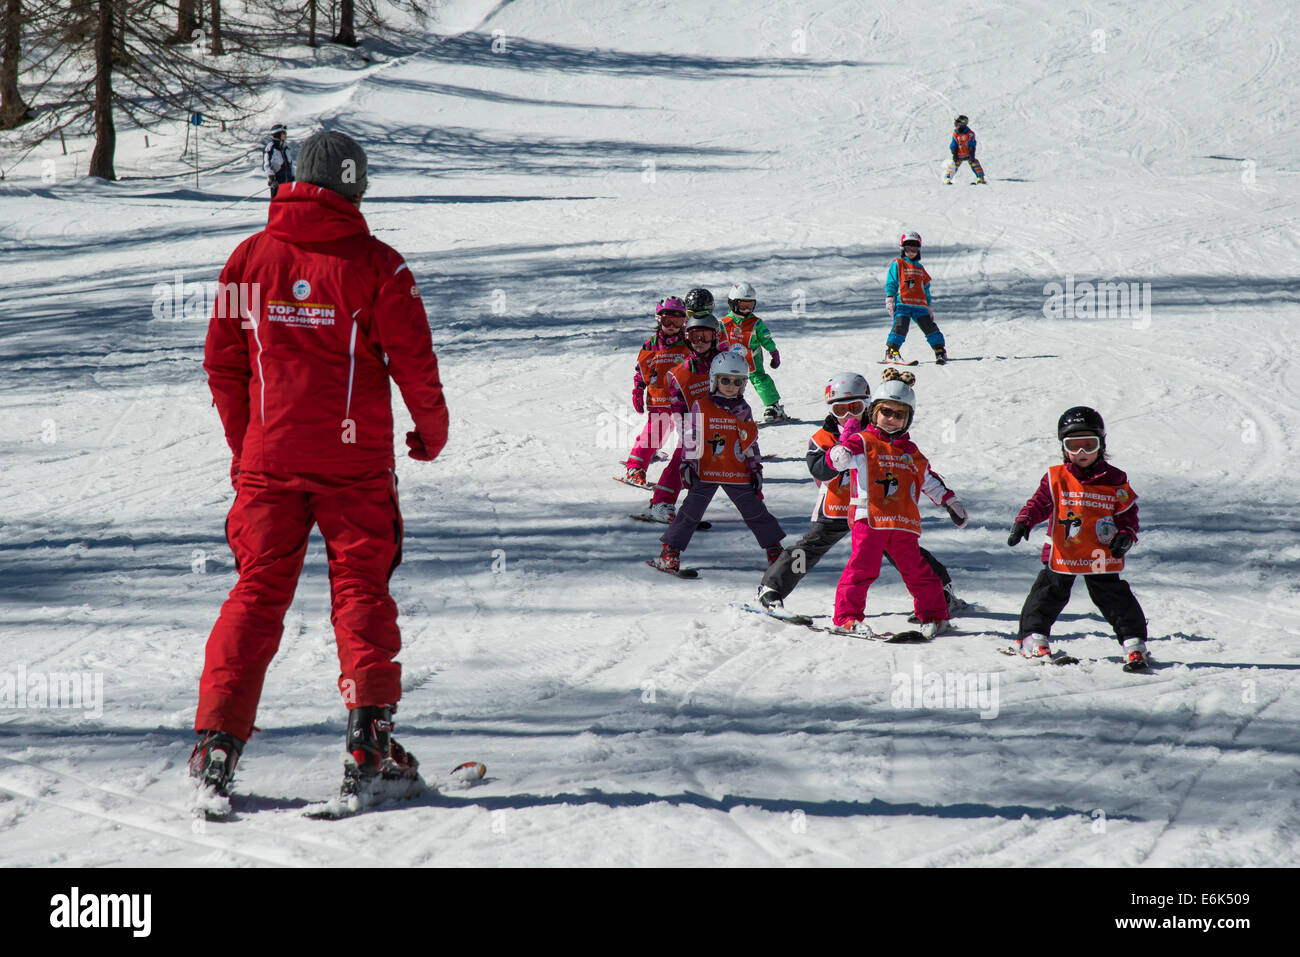 Children ski lessons with instructor on the piste, Zauchensee, Pongau, Tauern, Salzburg, Salzburg State, Austria - Stock Image